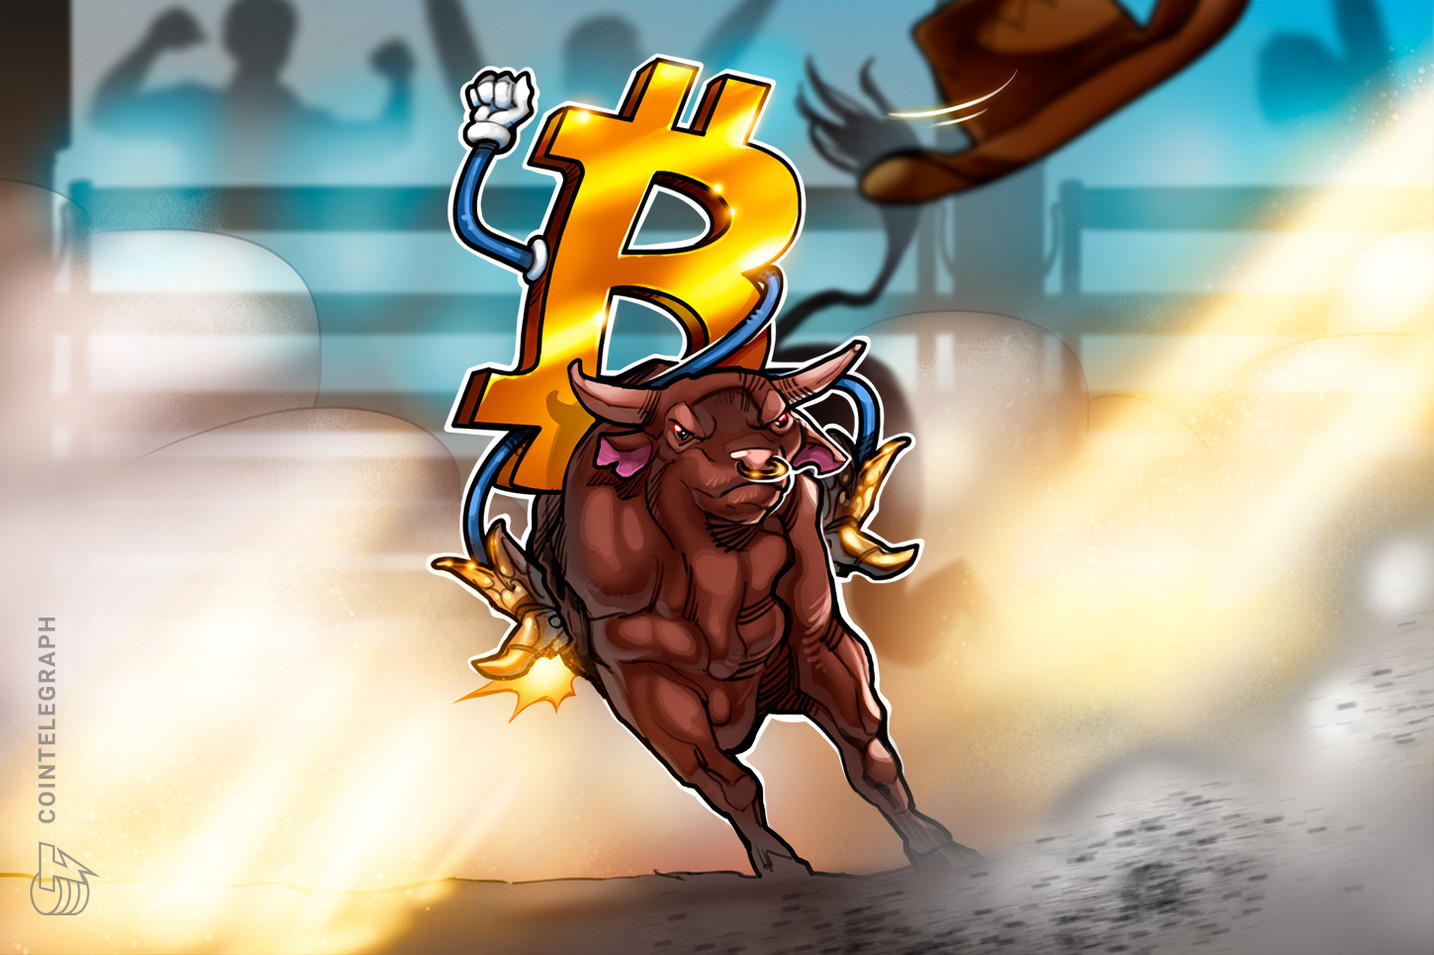 Data Analyst: 3 Key Metrics Show the Start of a New Bitcoin Bull Trend